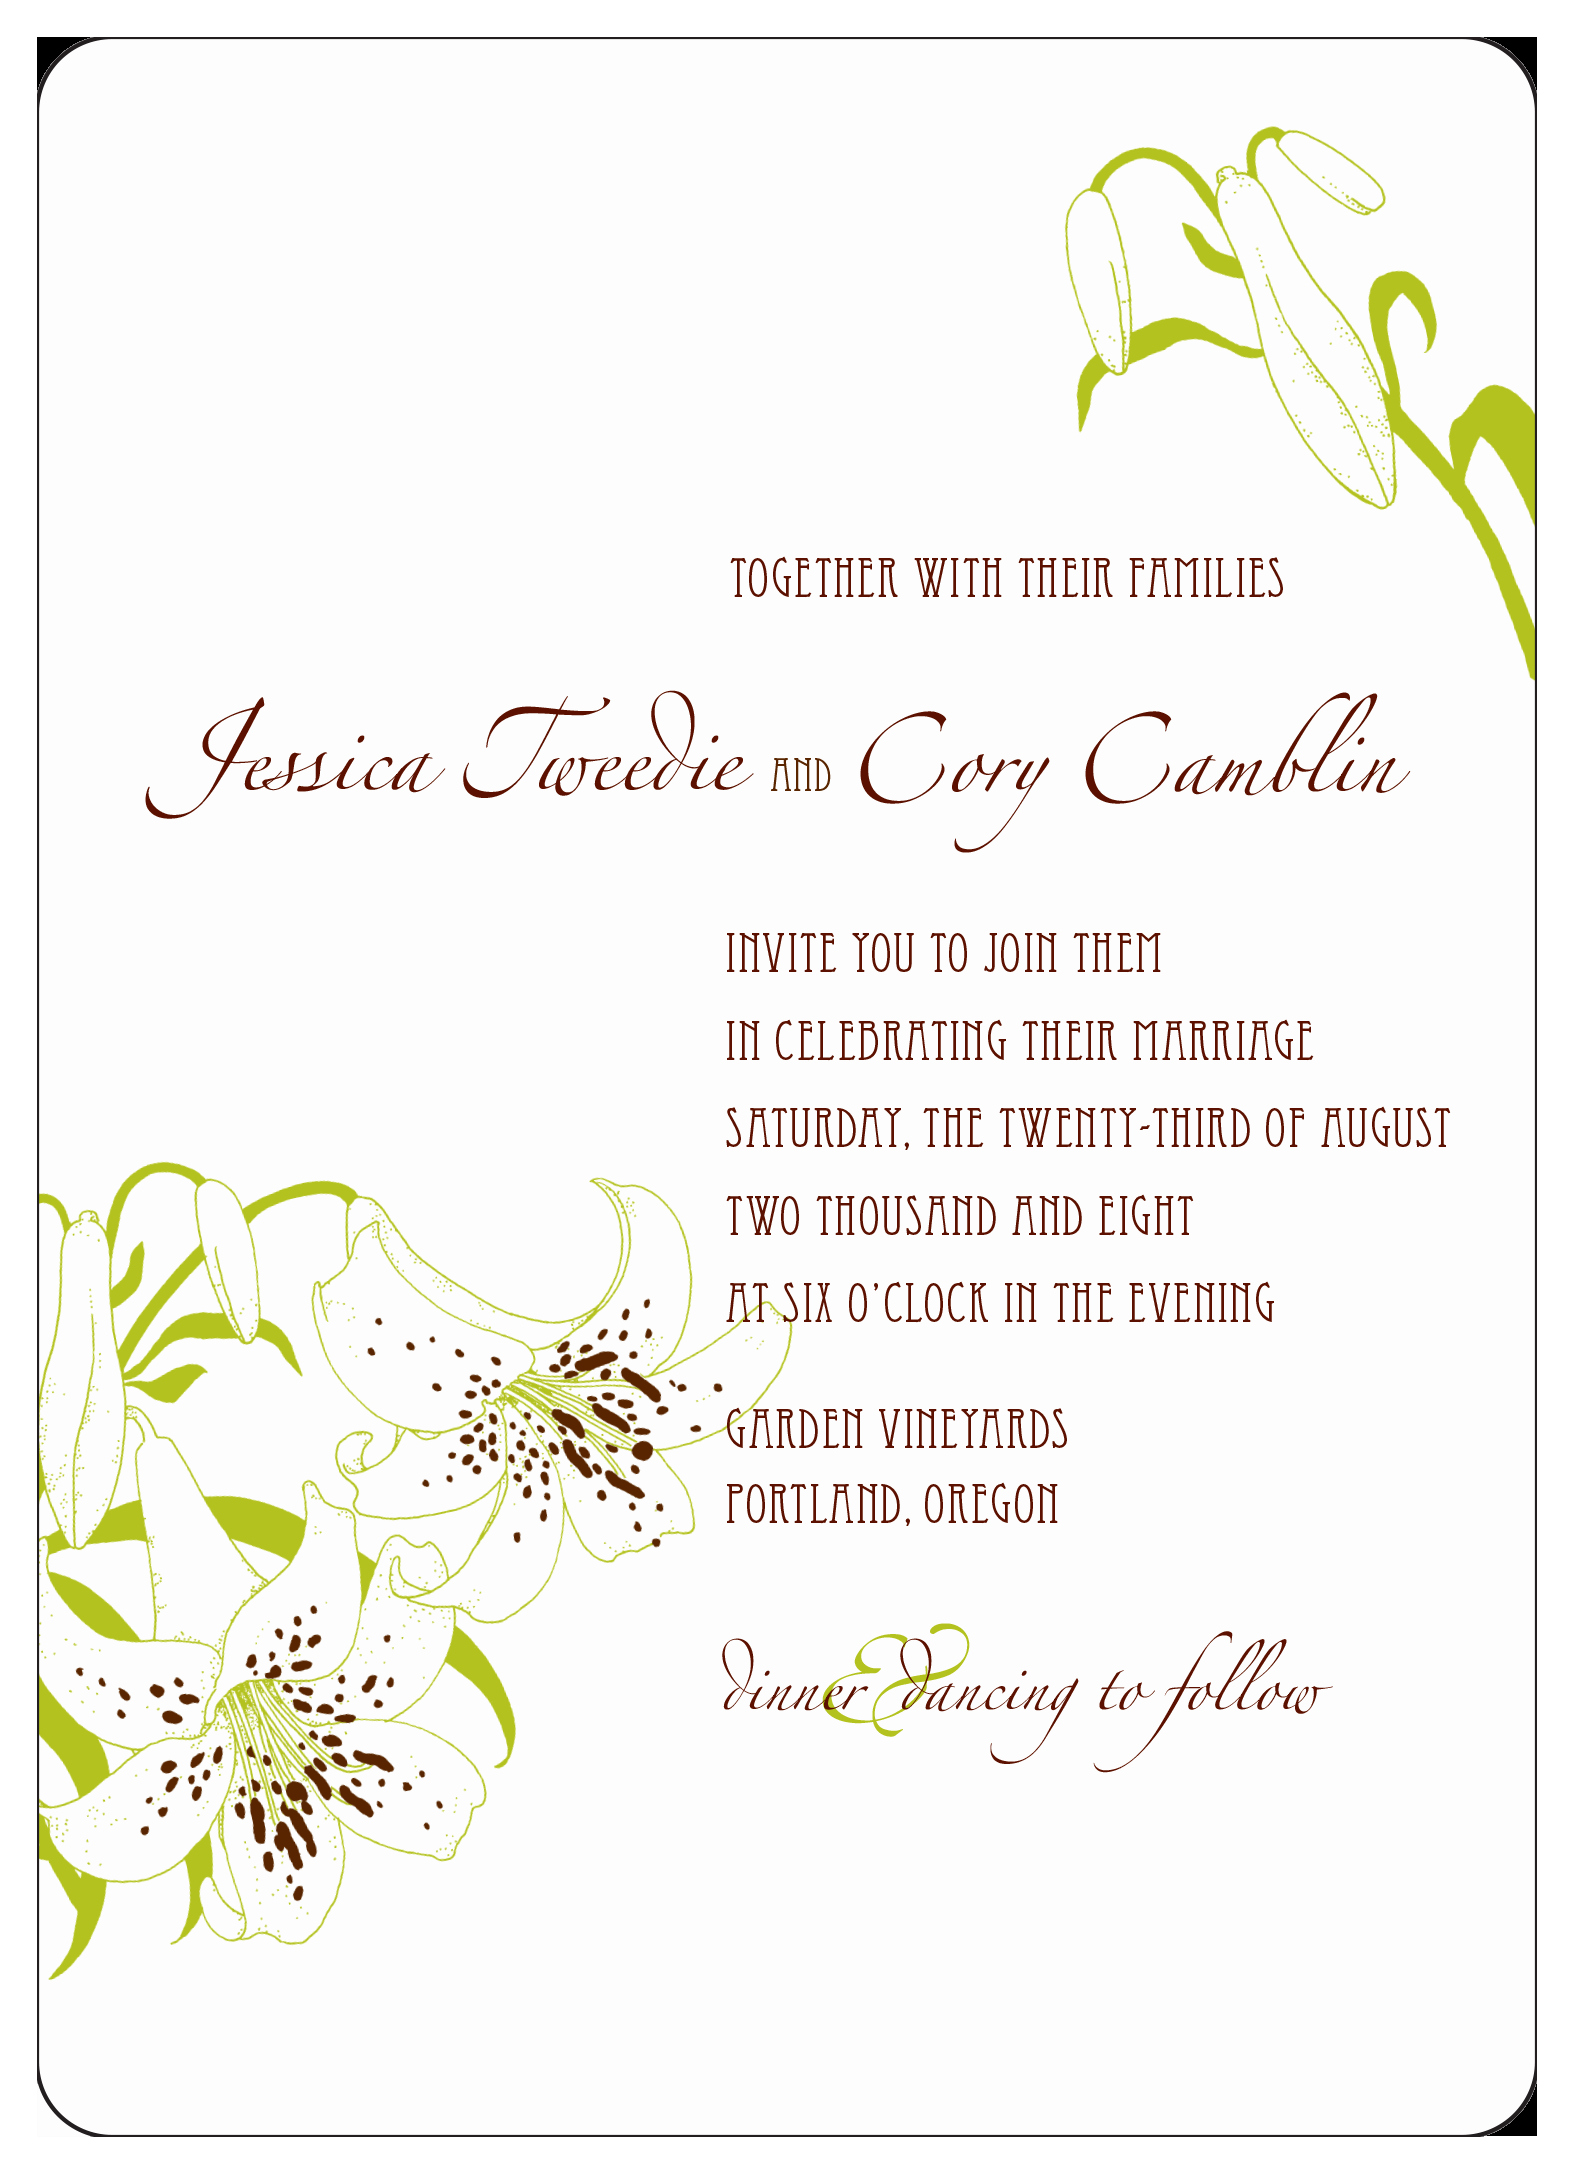 Wedding Invitation Template Illustrator Best Of Adobe Illustrator Wedding Invitation 2008 by Cory